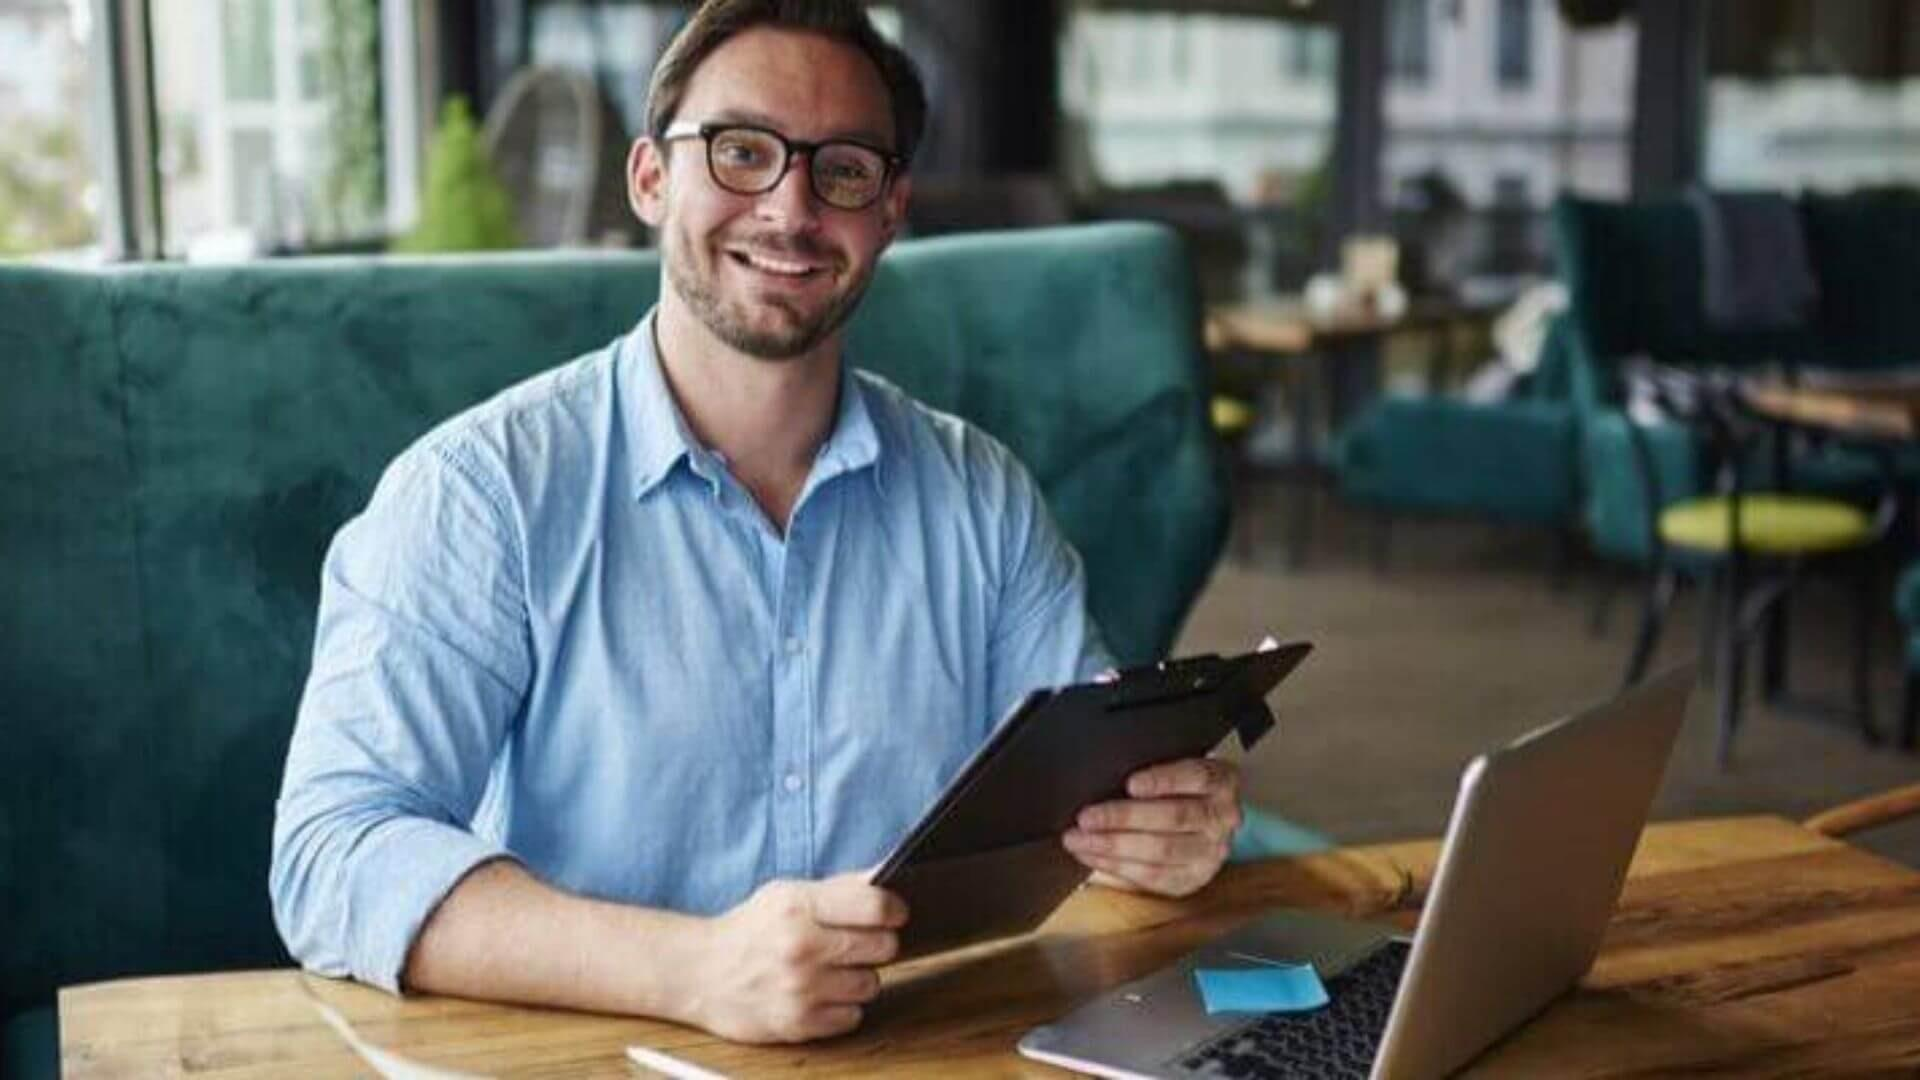 man holding ipad smiling at table